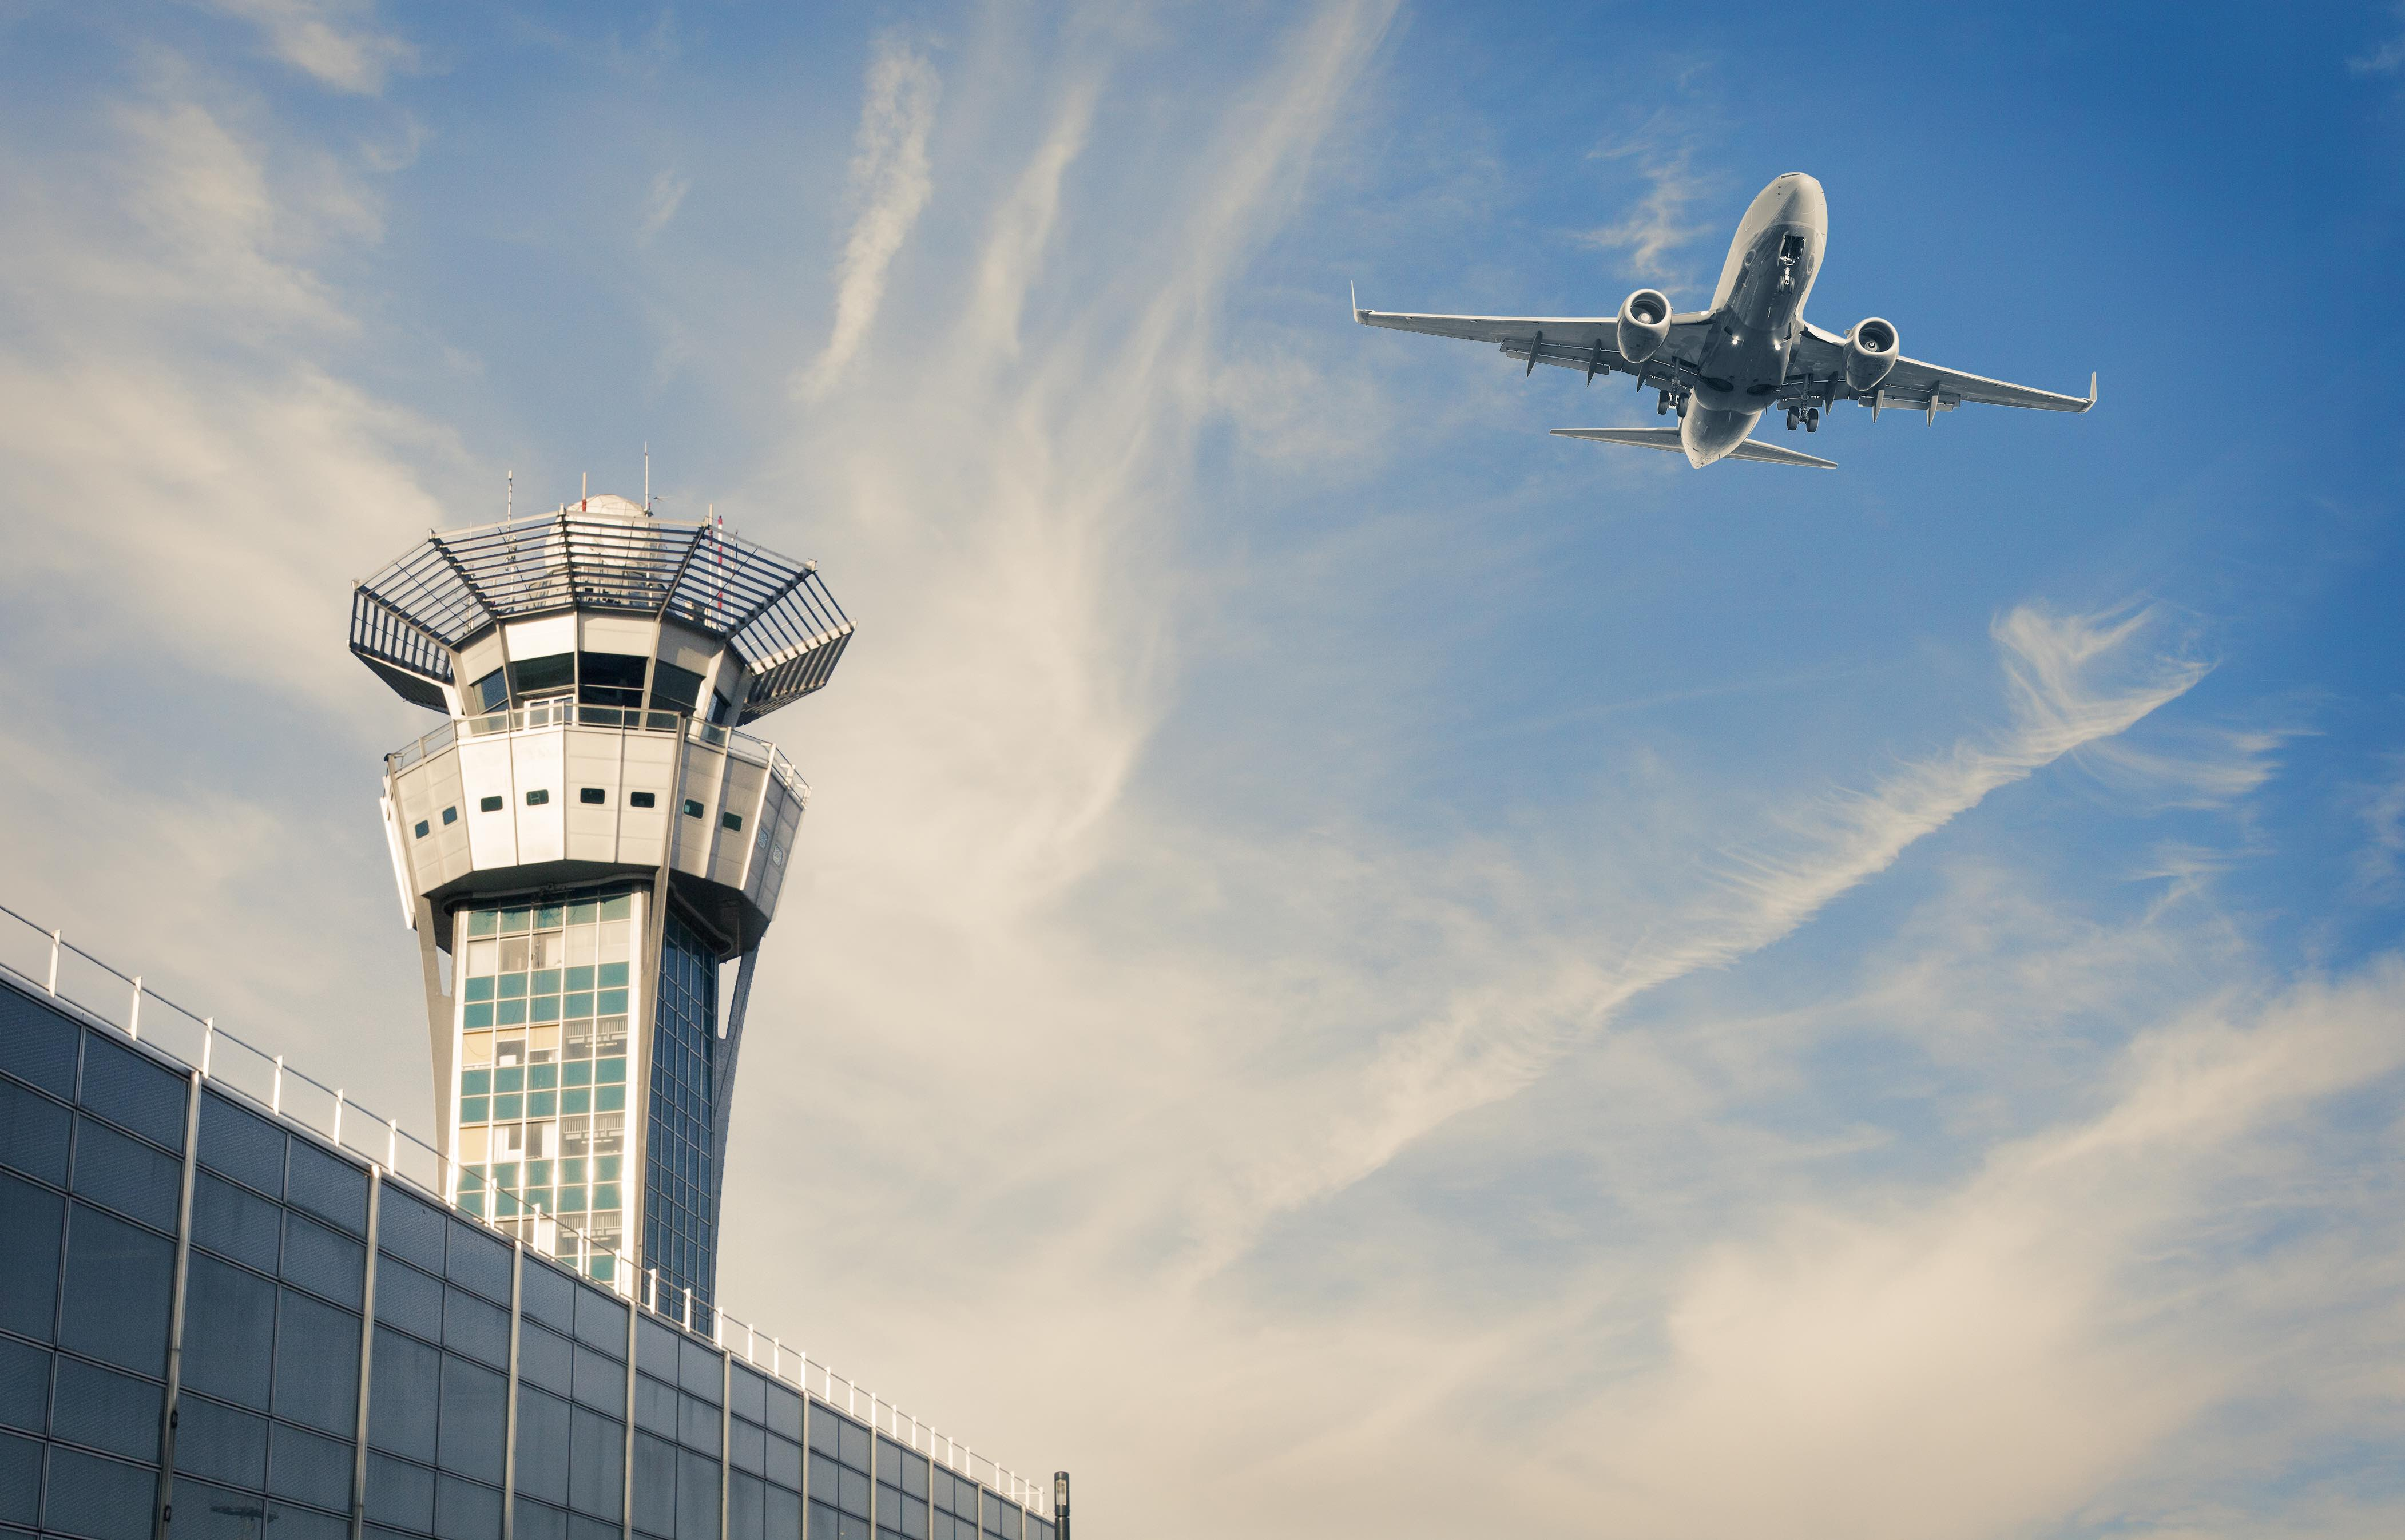 GNSS Spoofing and Aviation: An Evolving Relationship